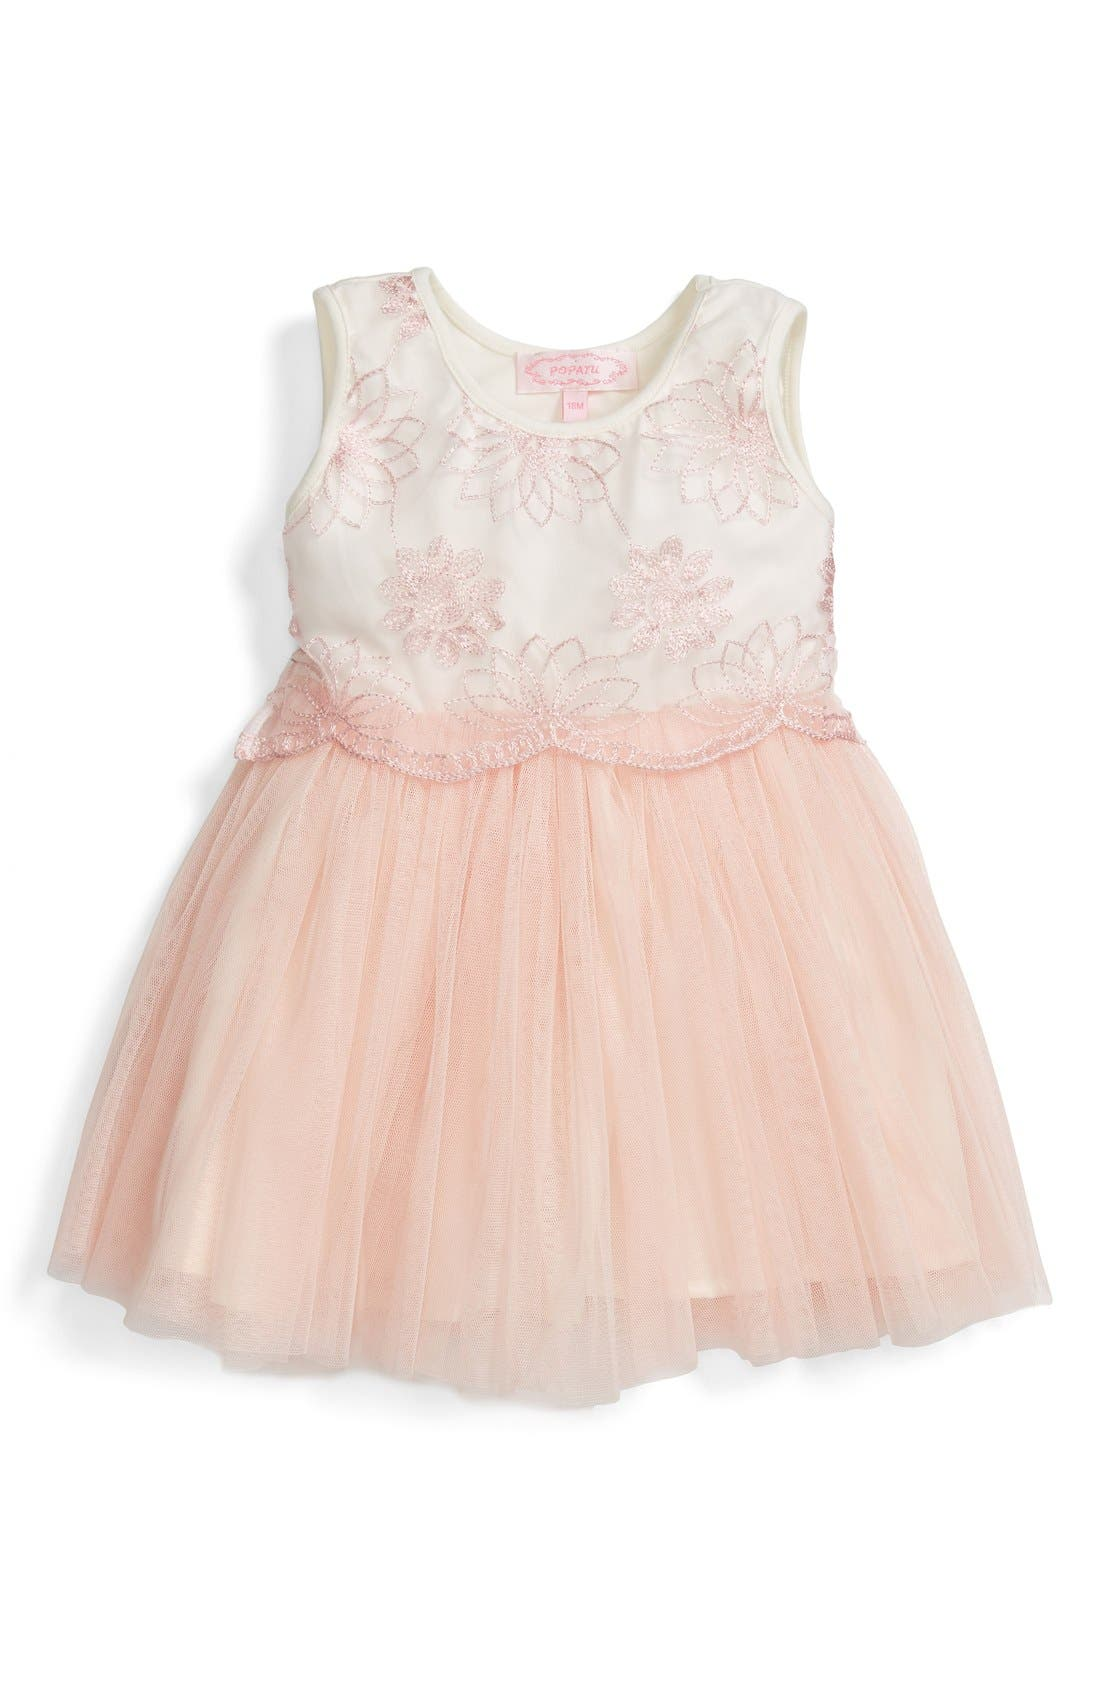 Embroidered Tulle Dress,                             Main thumbnail 1, color,                             Peach